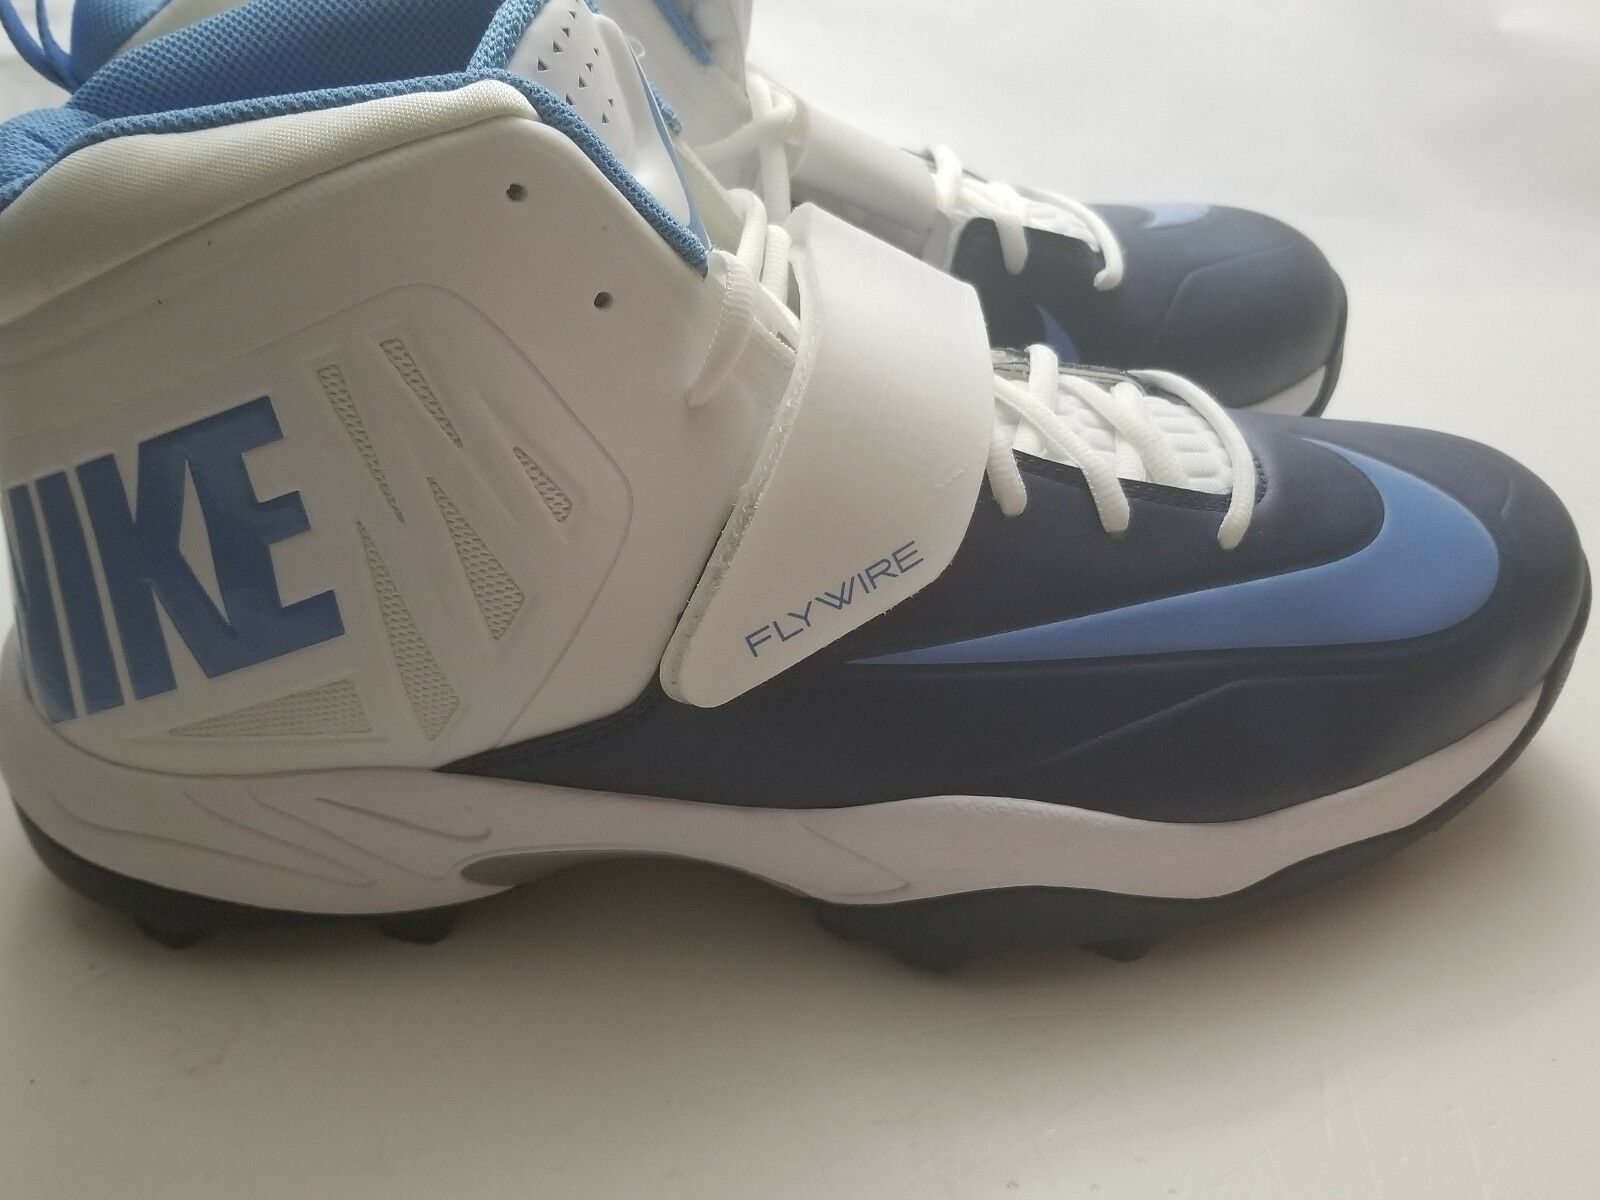 Men's 618167 131 football cleats Nike size 16 bluee white flywire new lineman 3 4